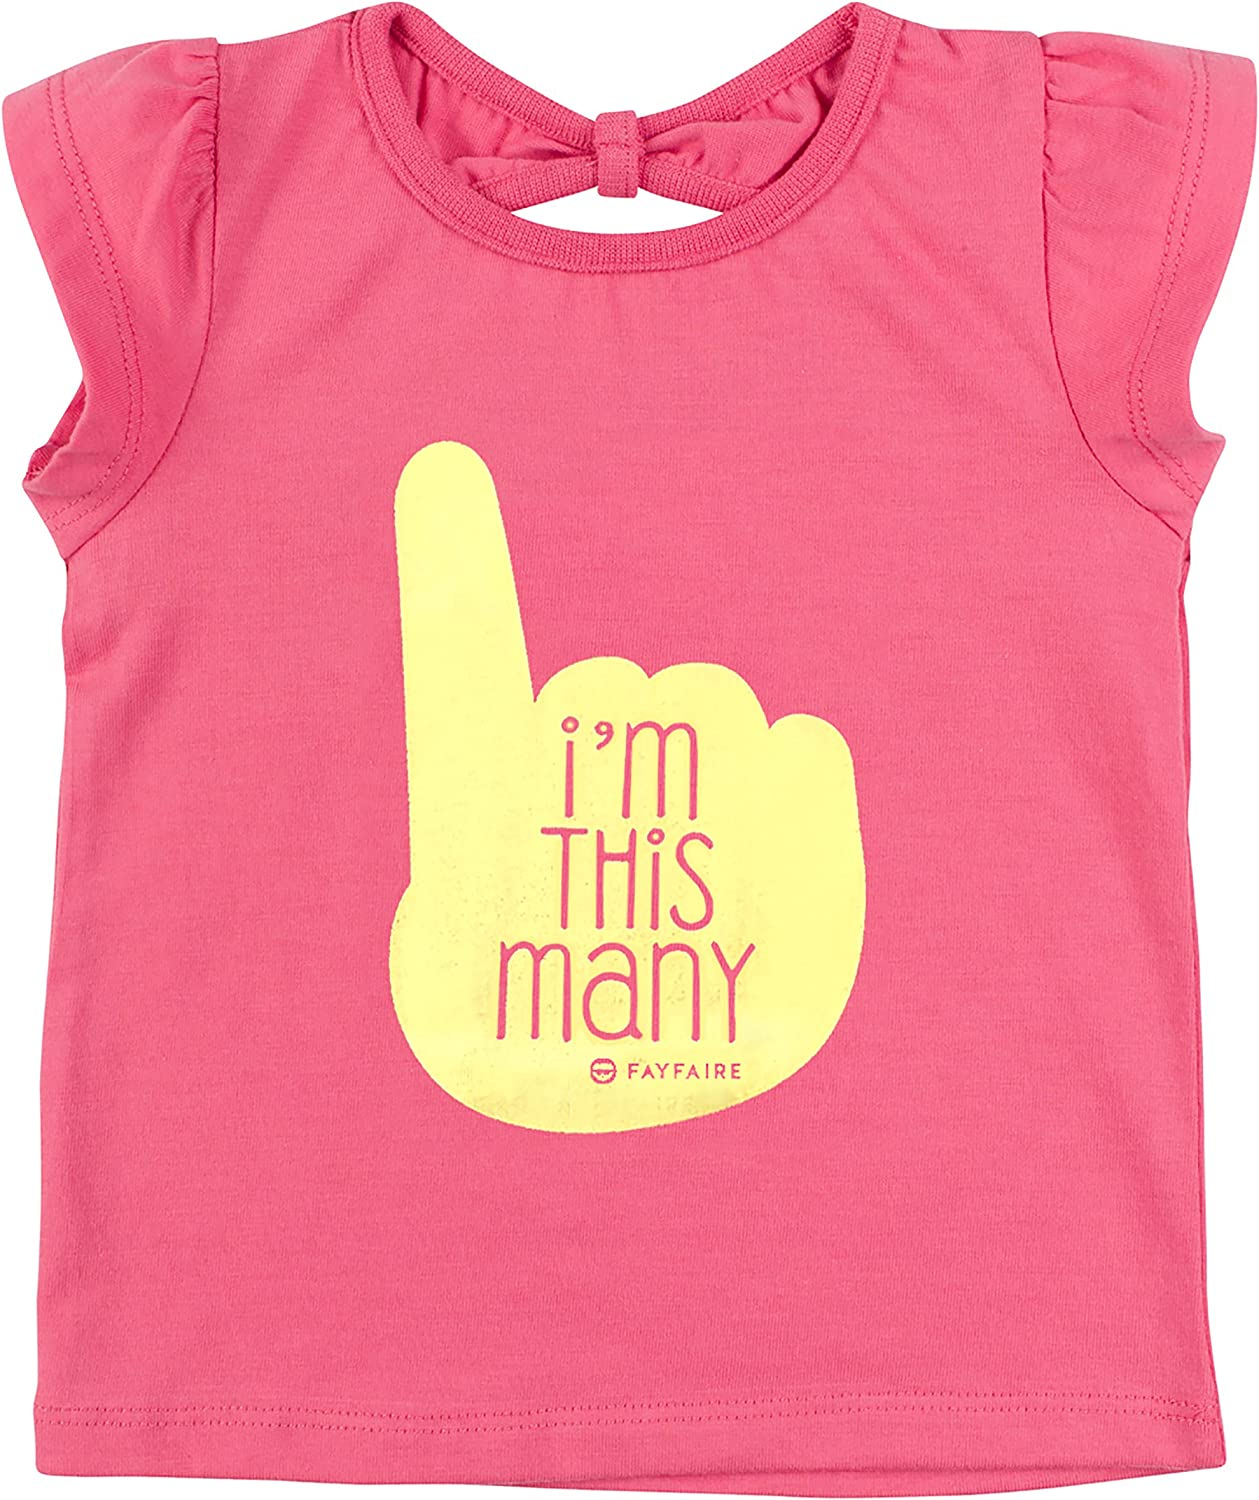 Fayfaire First Birthday Outfit Girl | 1st Bday Gift Shirt & Tutu I'm This Many 12M-18M